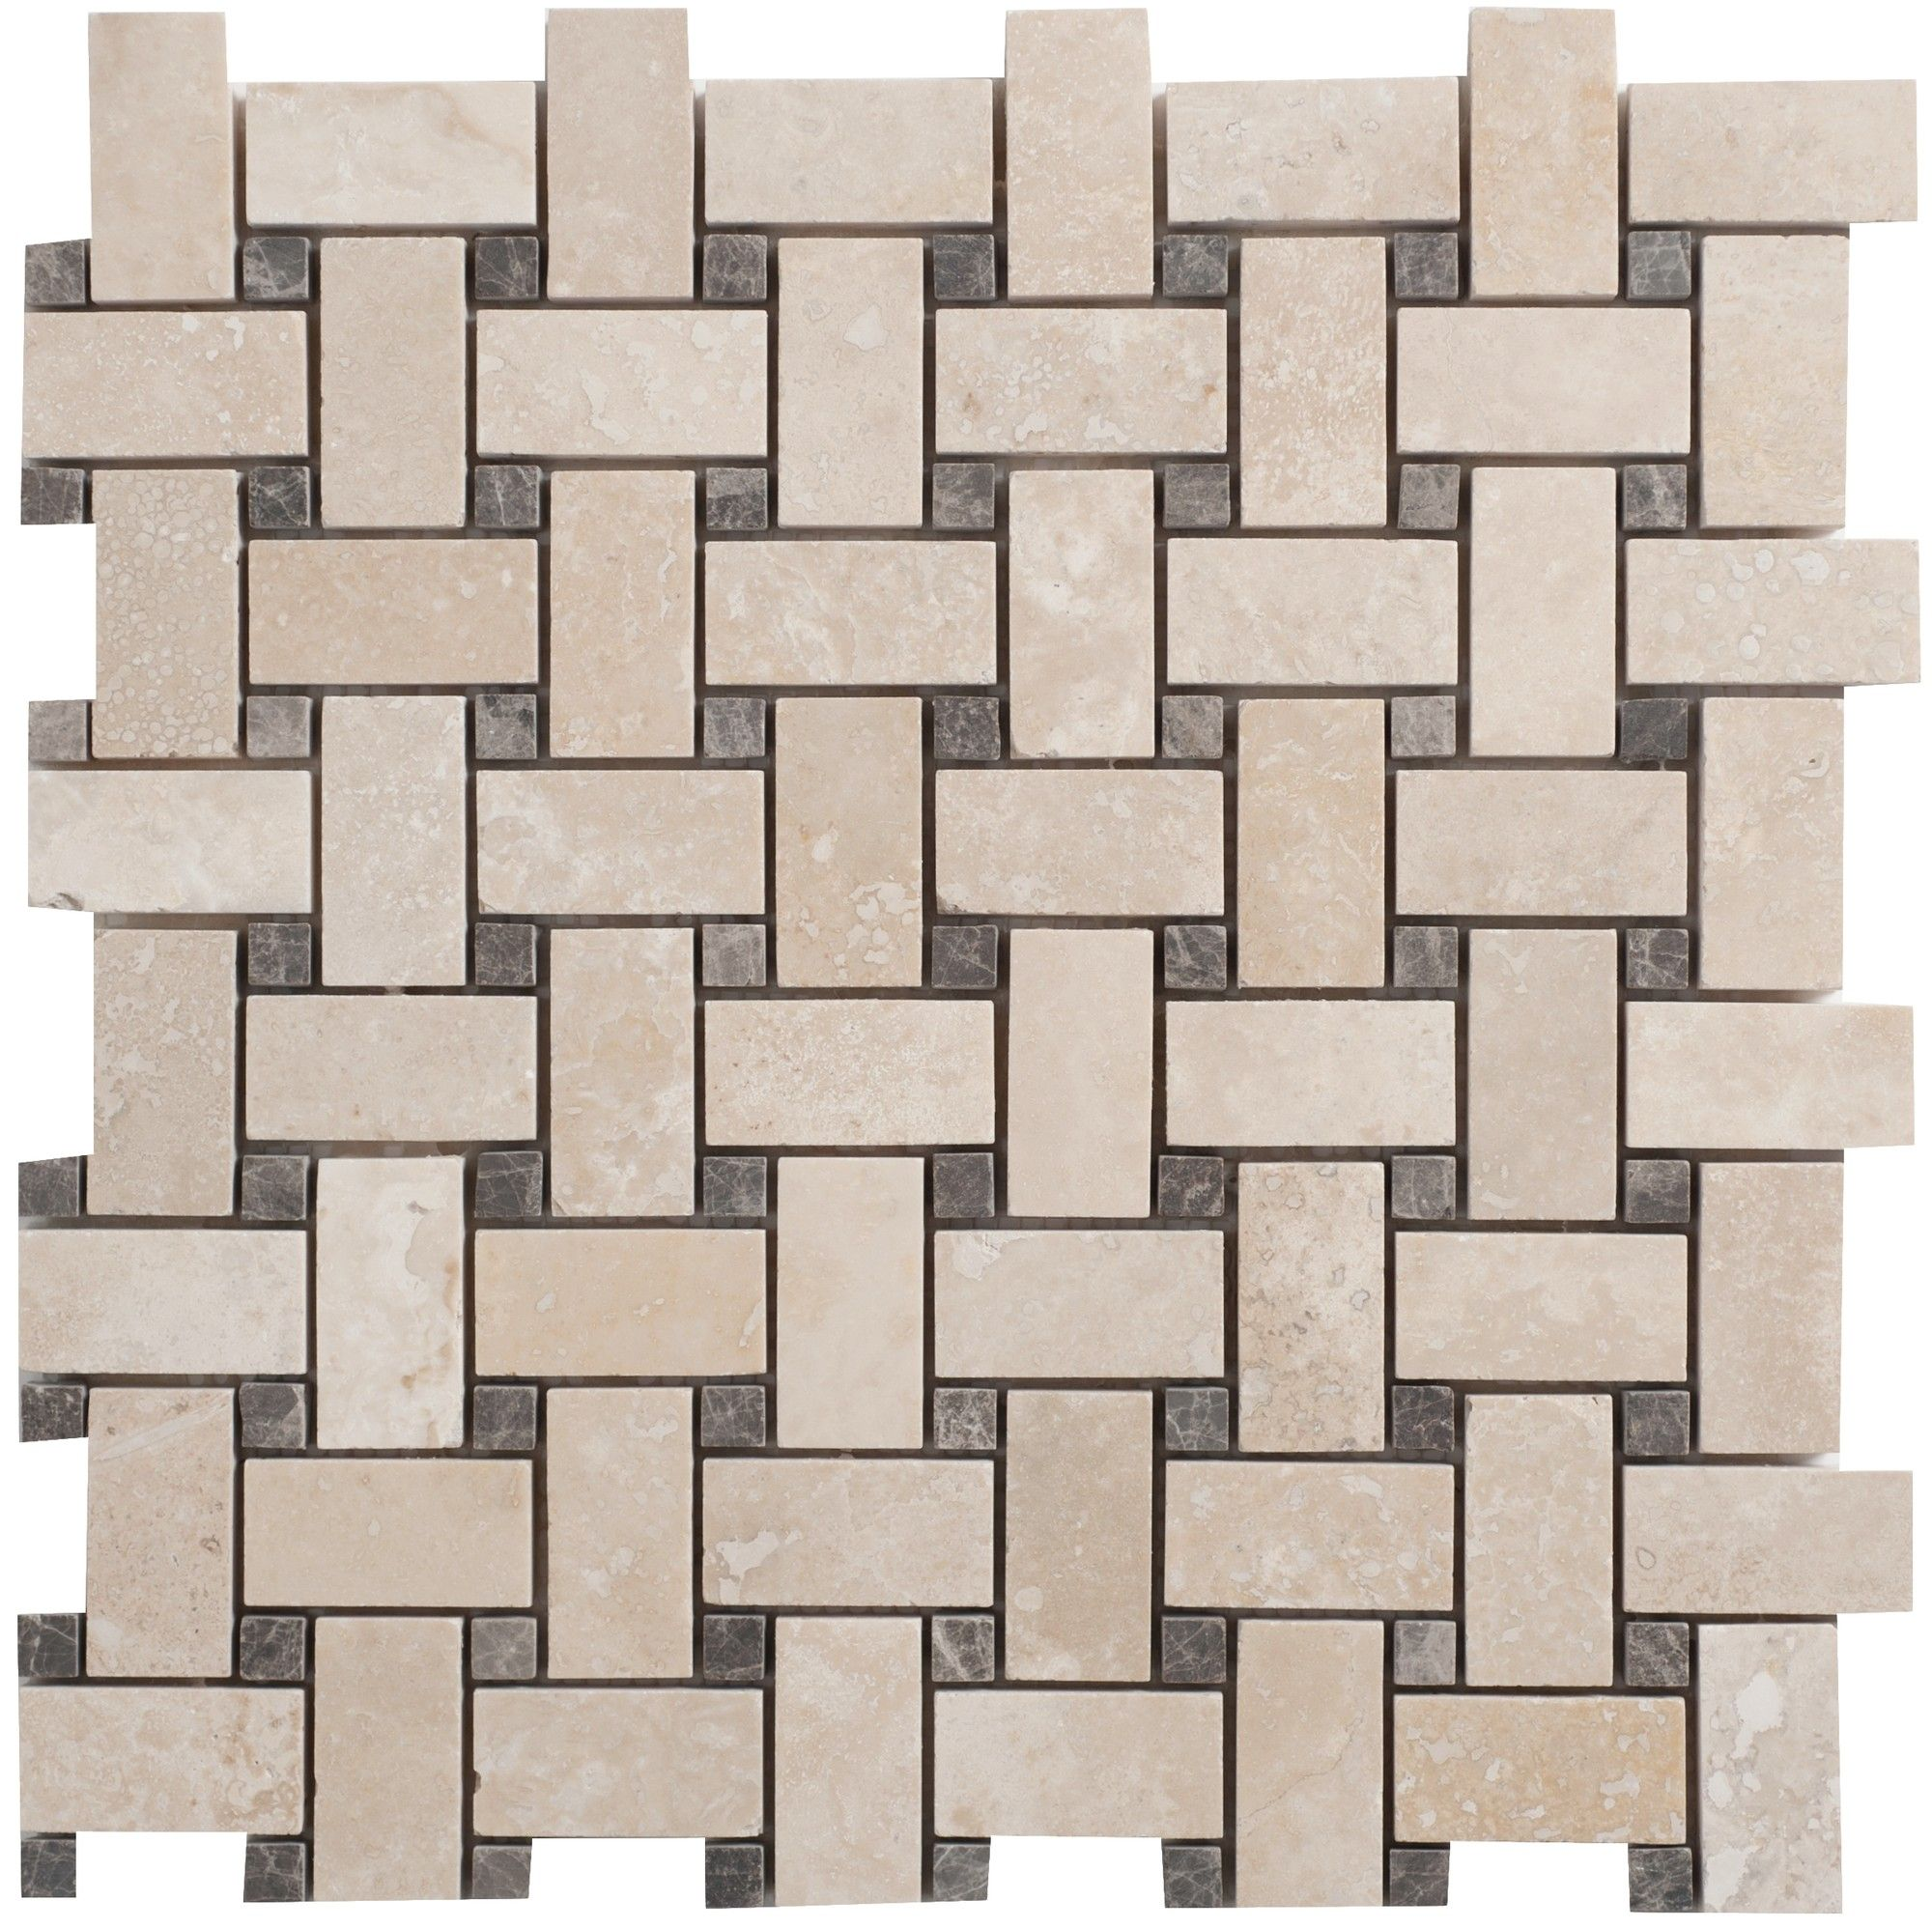 Faber Travertine Basketweave Filled And Honed Random Sized Tile In